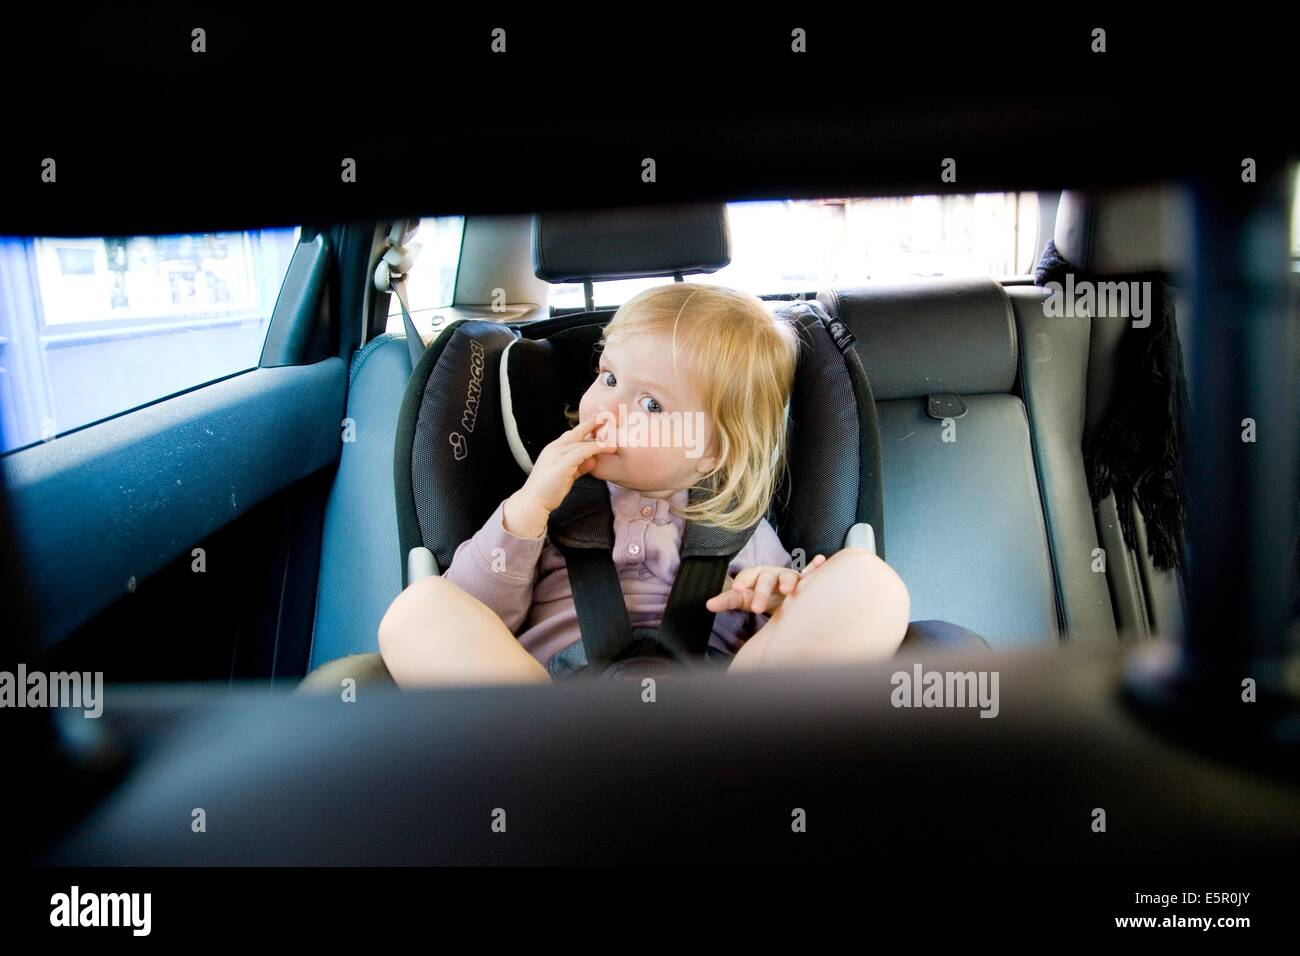 2 Year Old Baby Girl In A Car Seat